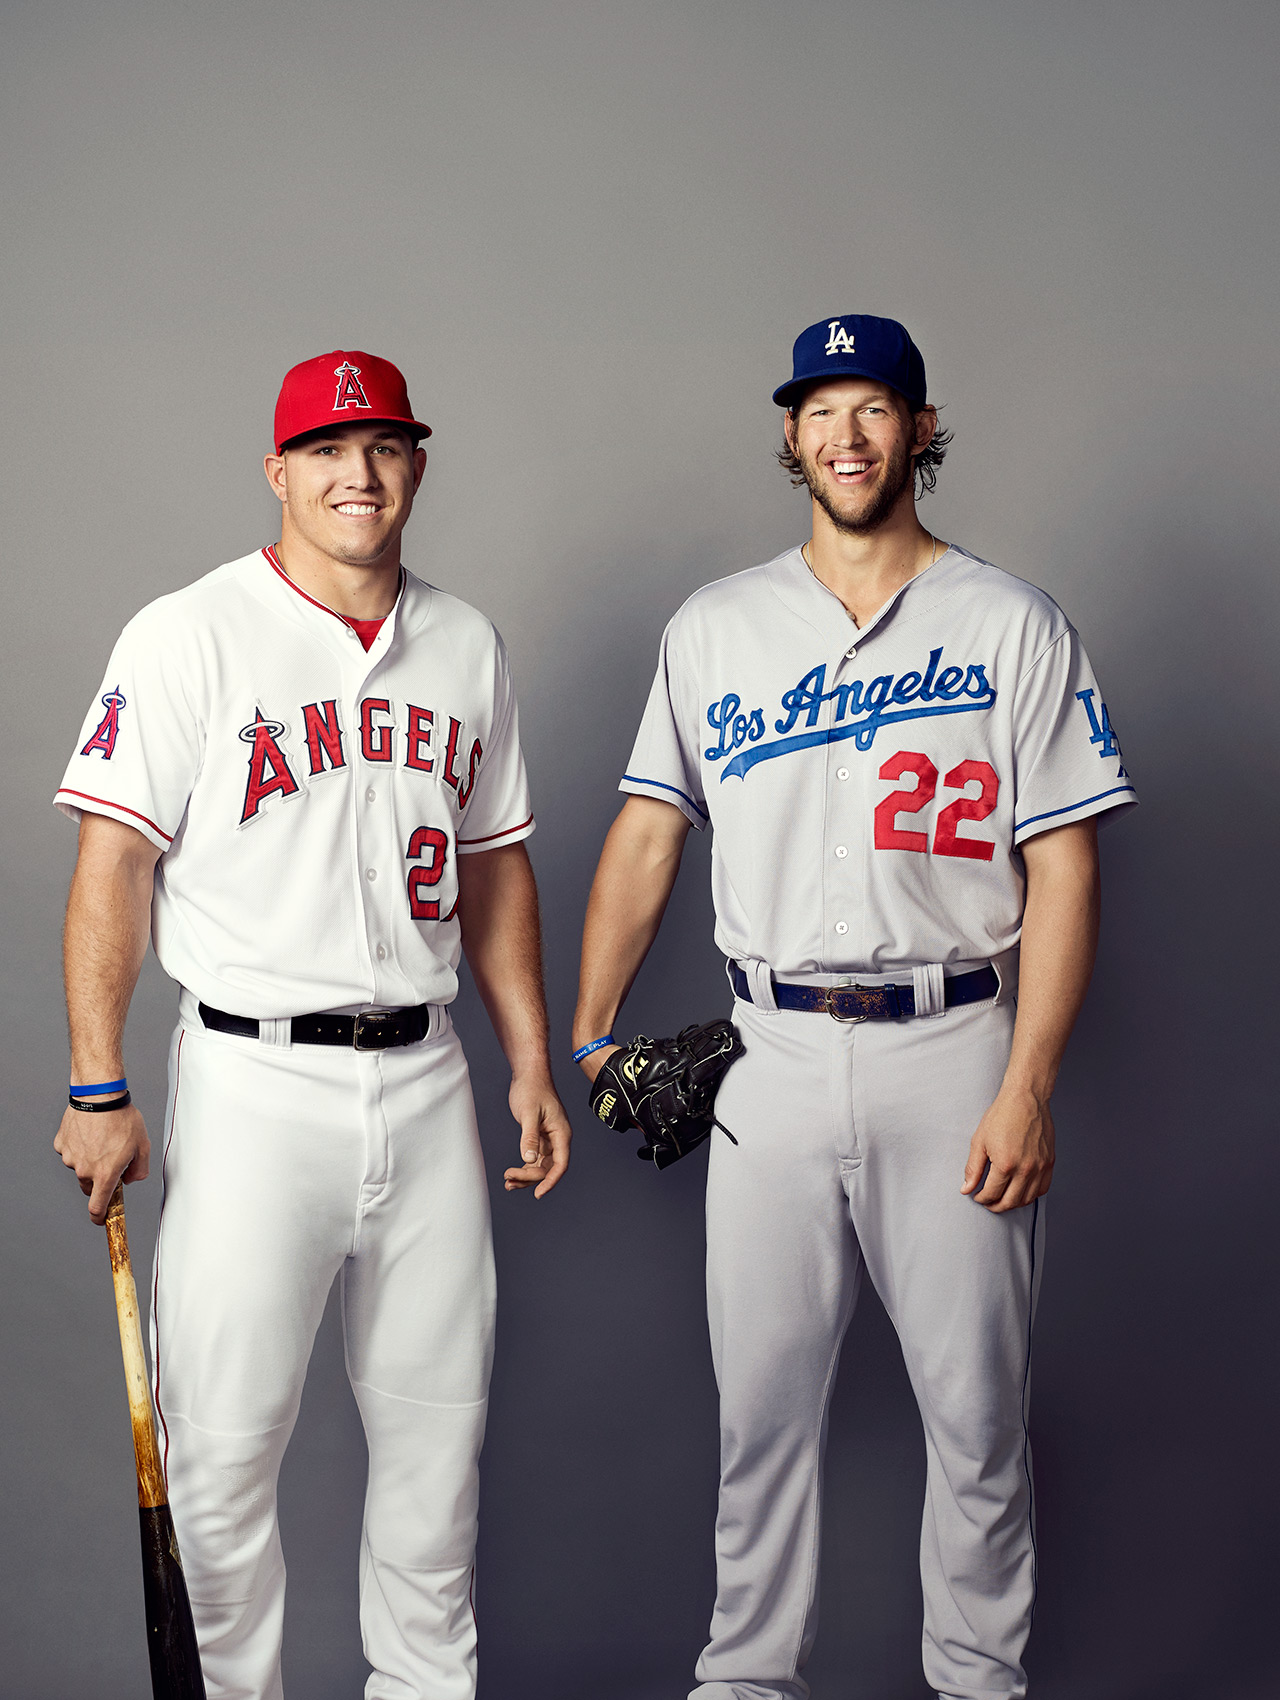 01_20140807_Kershaw-Trout_0010-web2017